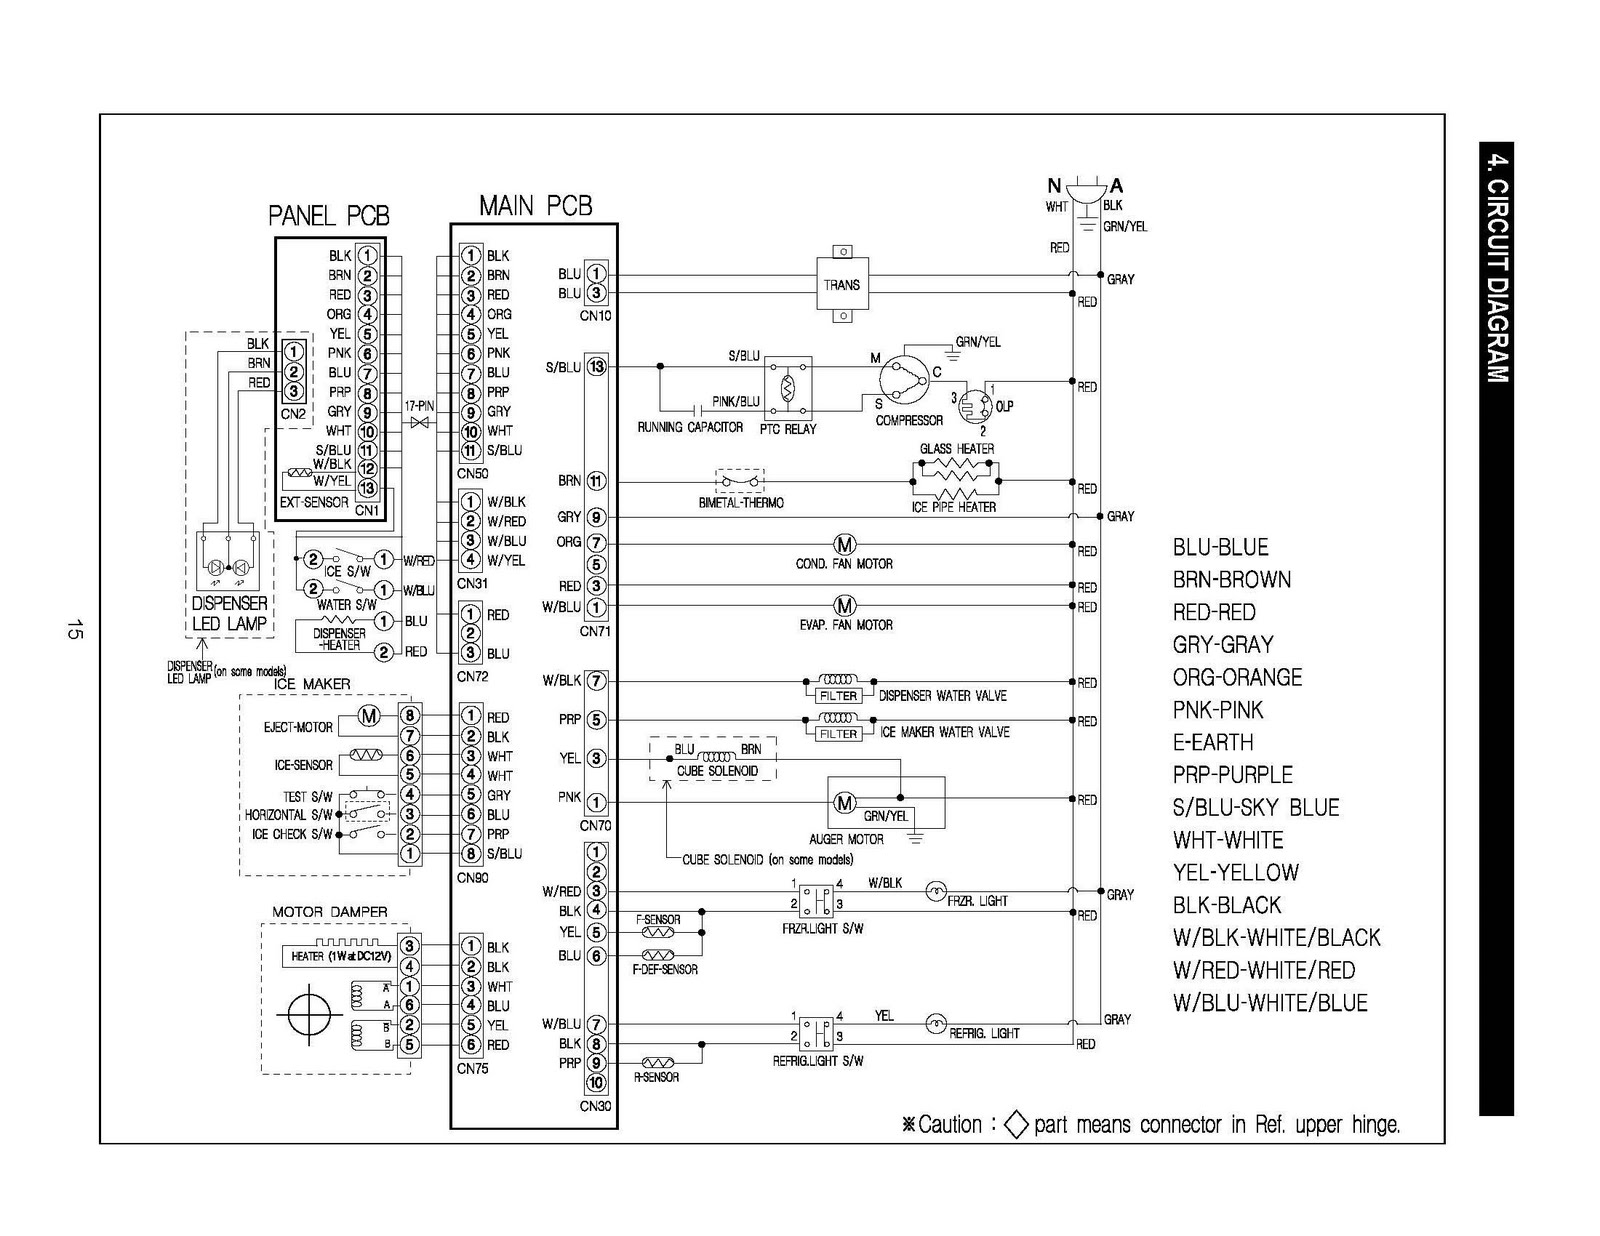 medium resolution of refrigerators parts 3 door refrigerator samsung refrigerator circuit diagram samsung refrigerator compressor wiring diagram